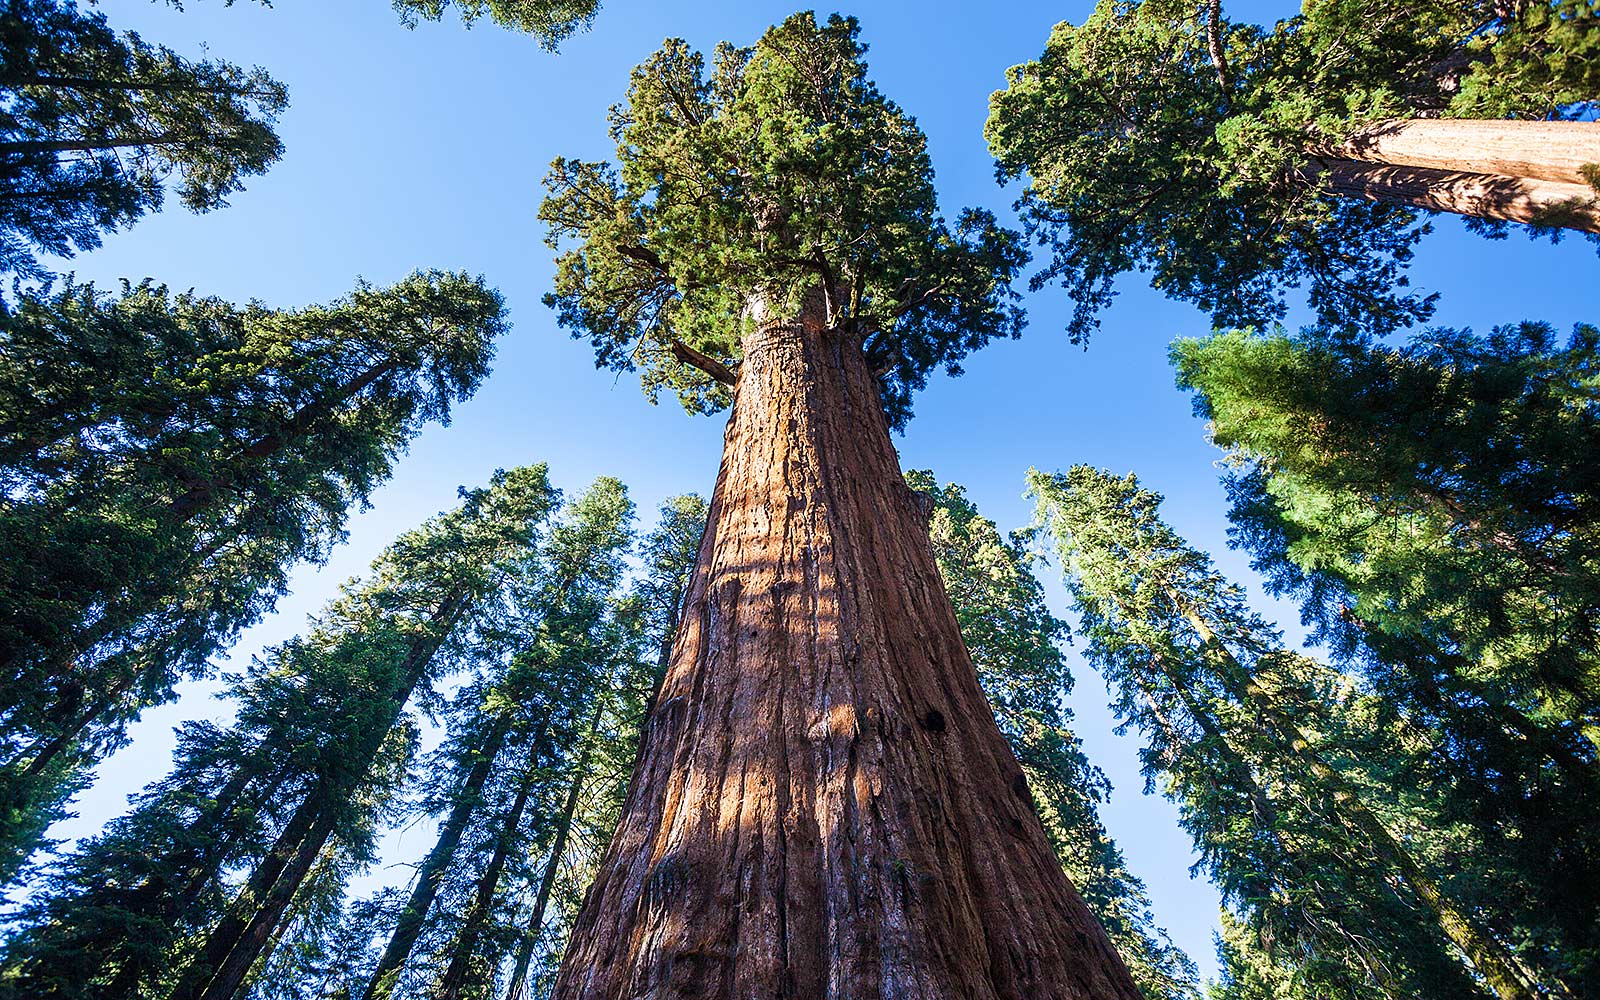 RIP Pioneer Cabin Tree: Here Are 10 More Incredible Trees Worth Visiting